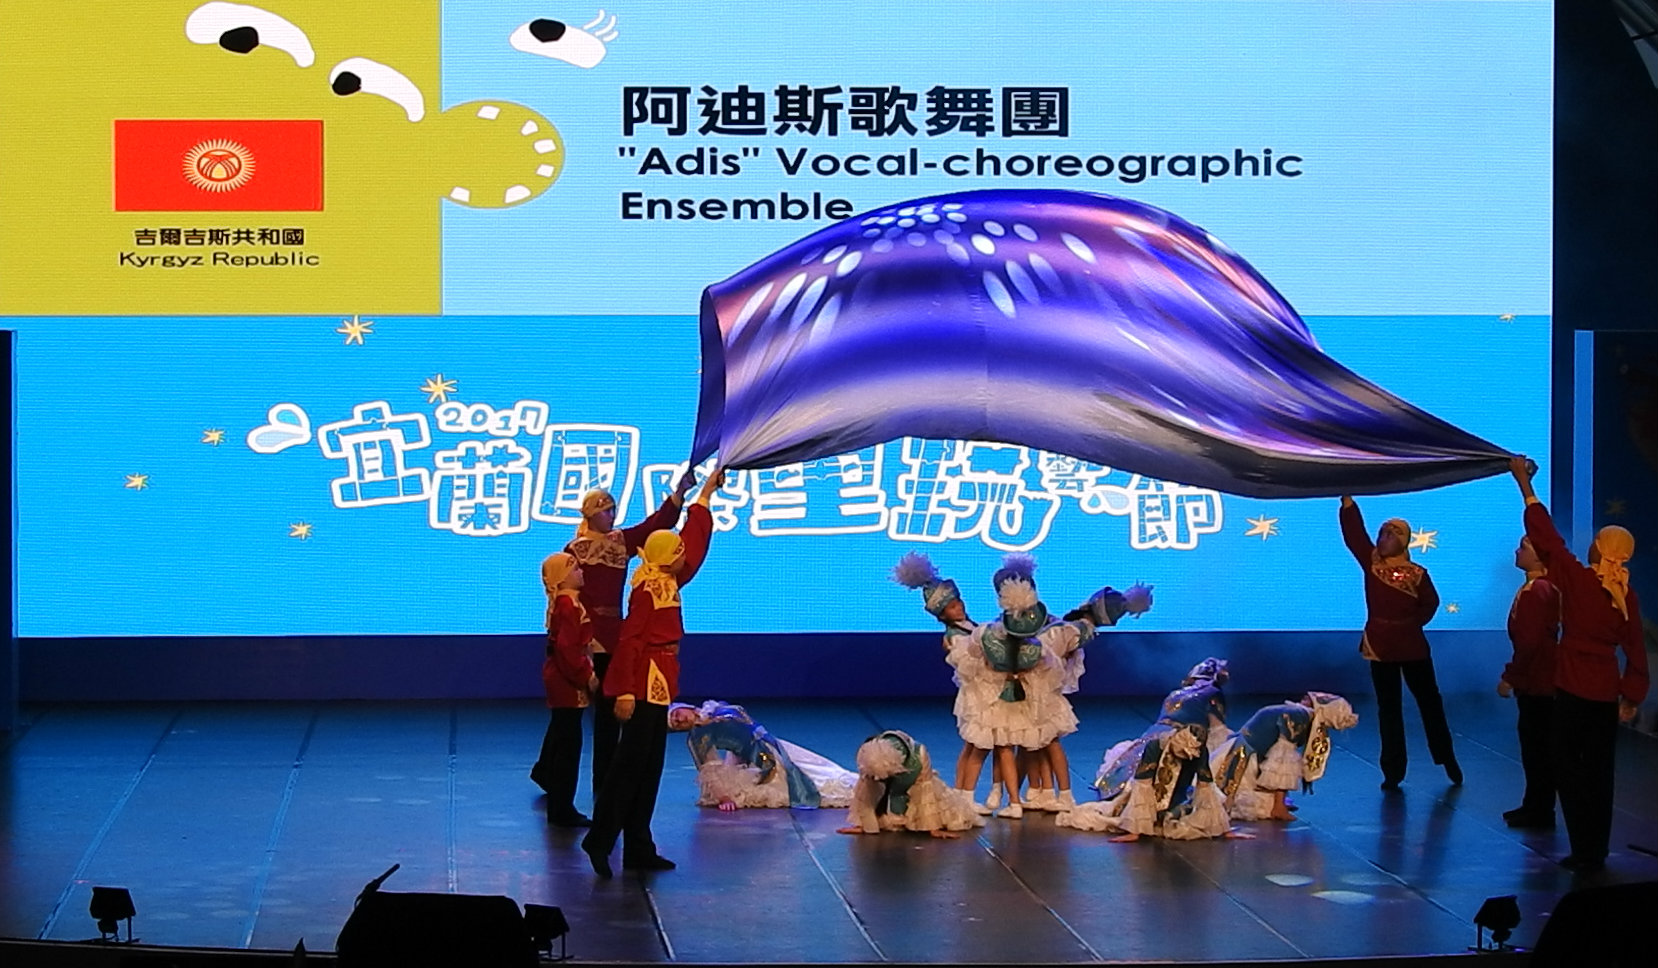 """The performance of """"Adis"""" Vocal-choreographic Ensemble from Kyrgyz Republic (Image: Billy Shyu/ Vision Times)"""